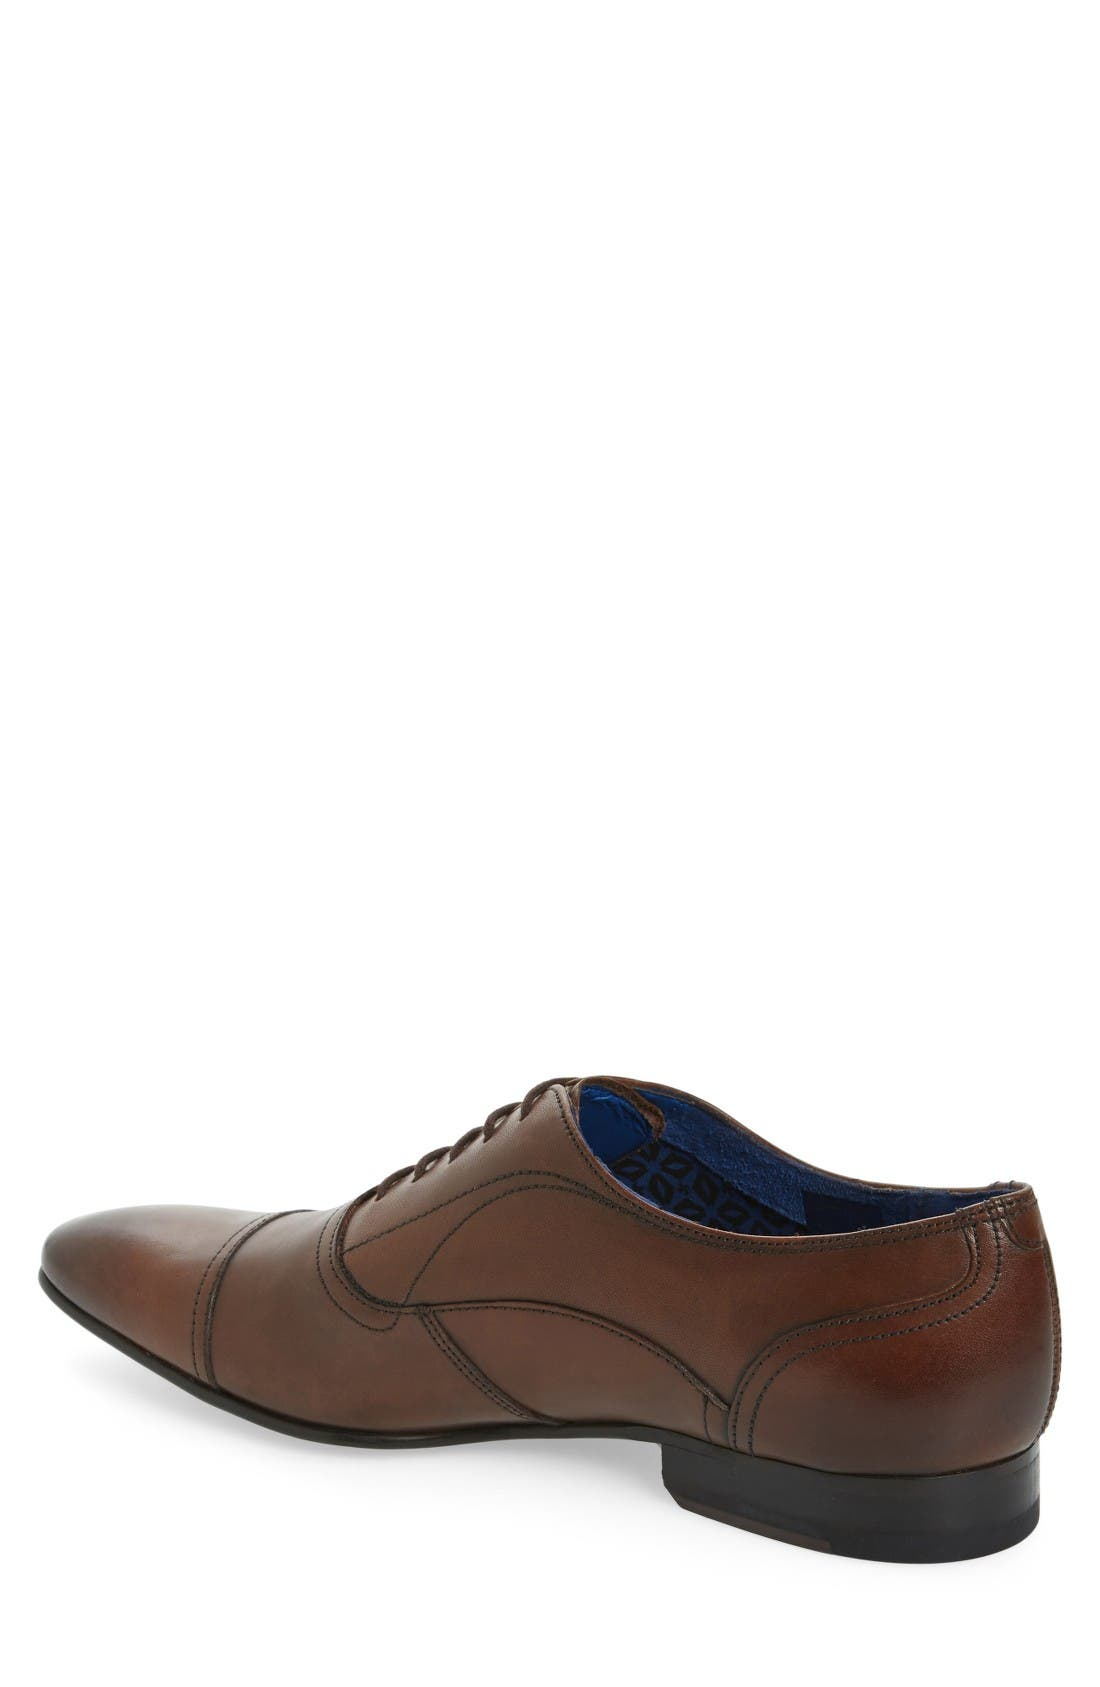 'Umbber' Cap Toe Oxford,                             Alternate thumbnail 2, color,                             Brown Leather